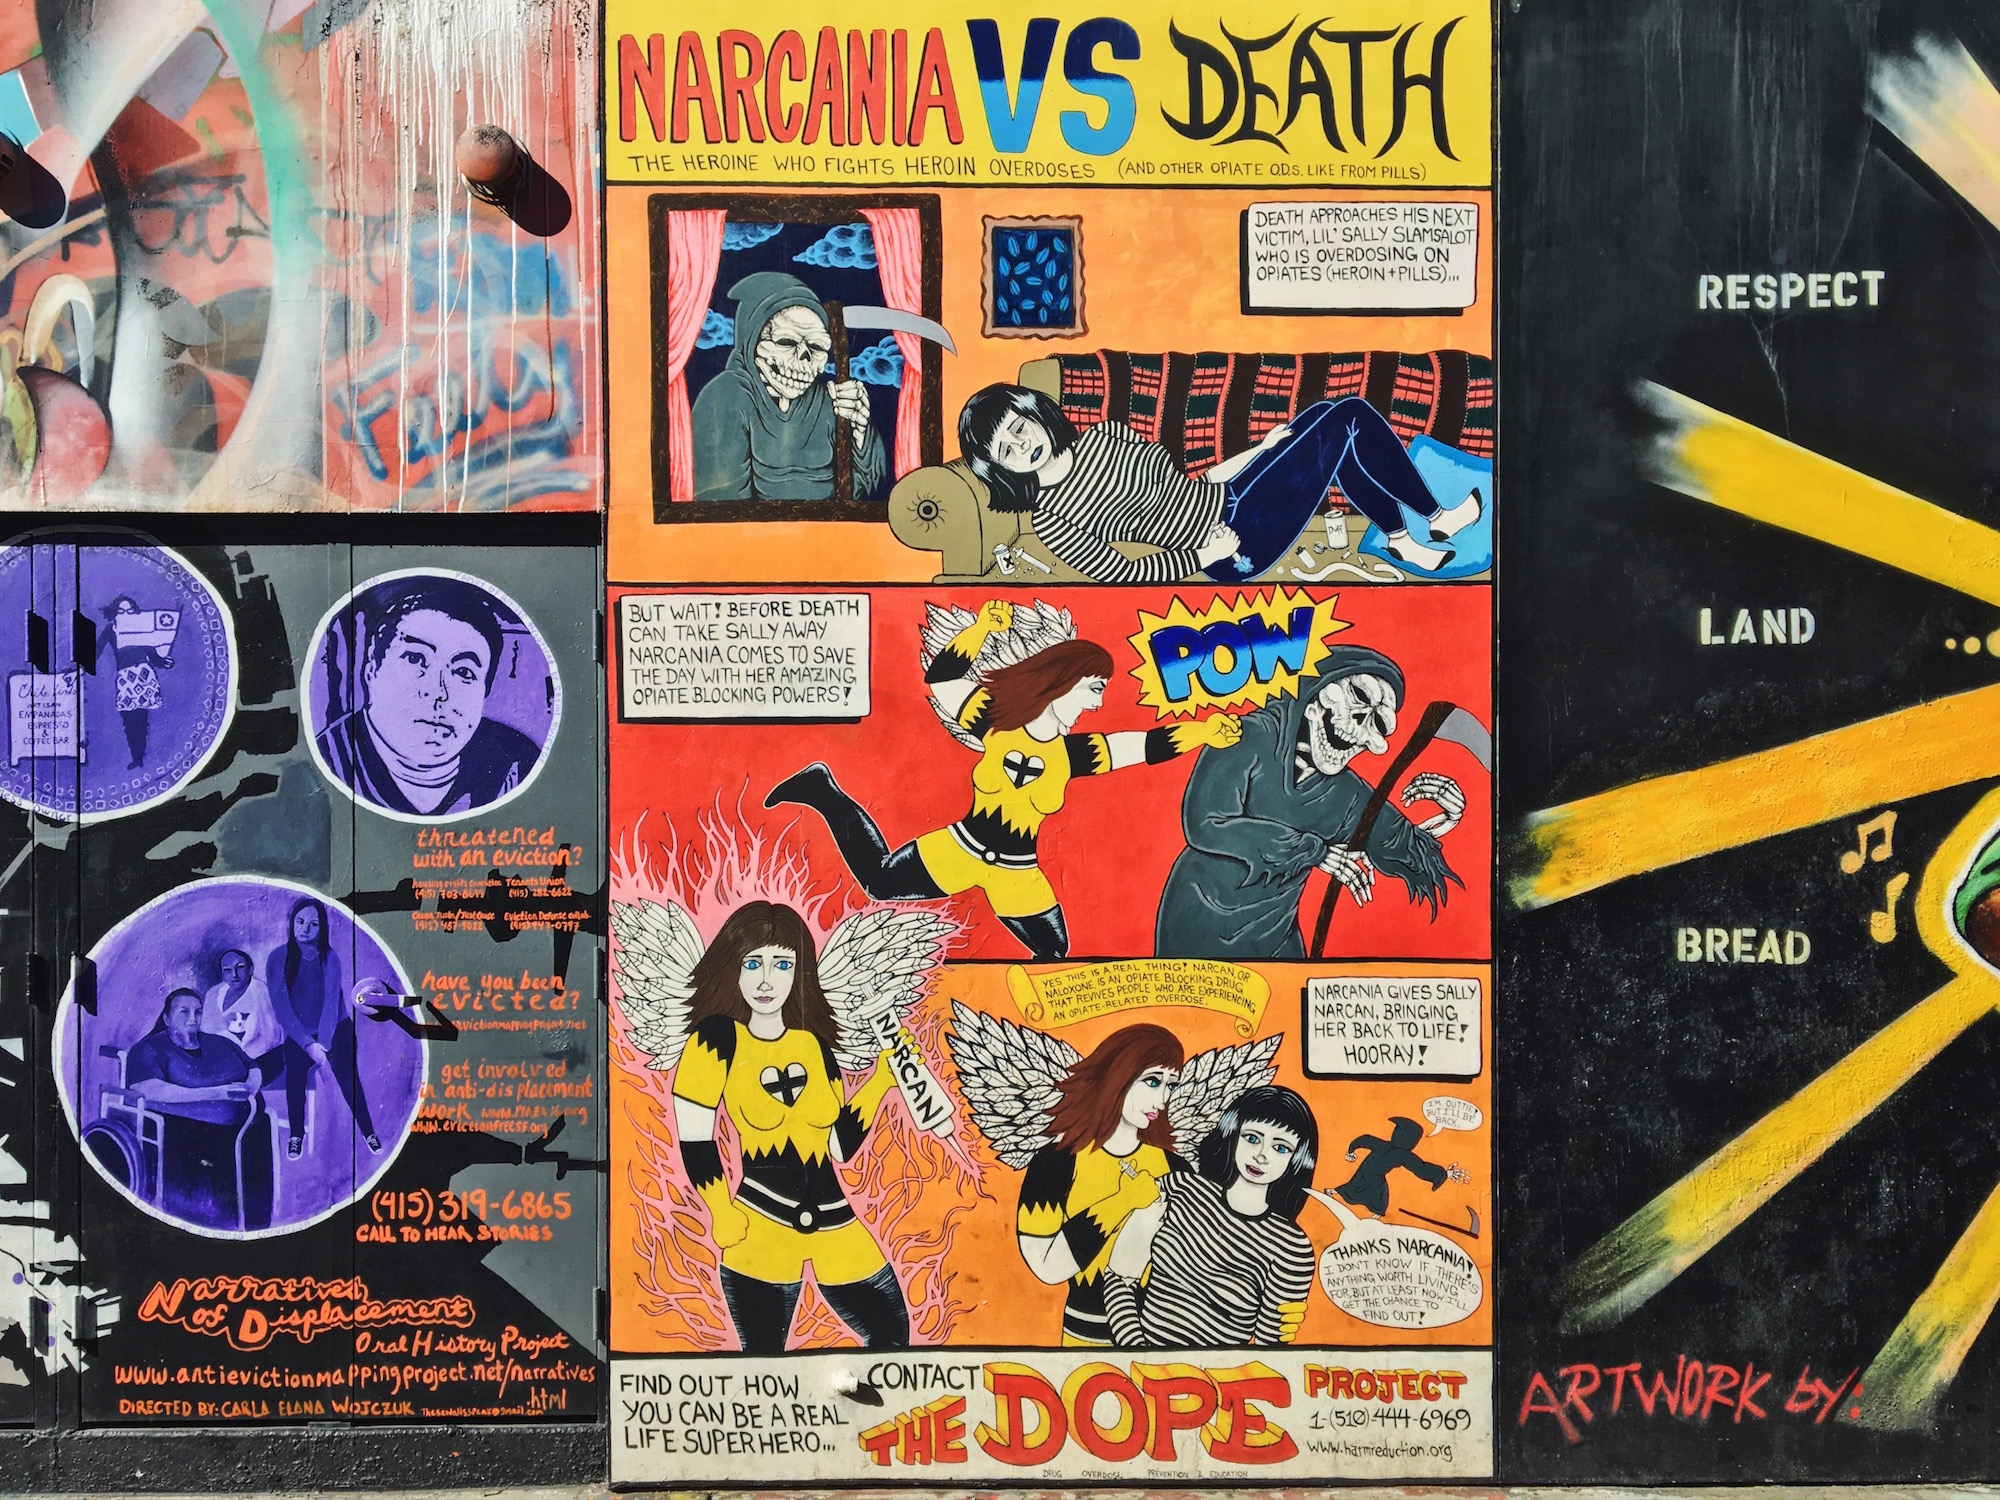 Clarion Alley - Murales nel quartiere Mission di San Francisco - Narcania VS Death - The heroine who fights heroin overdoses (2013) - Mike Reger, Erin Ruch